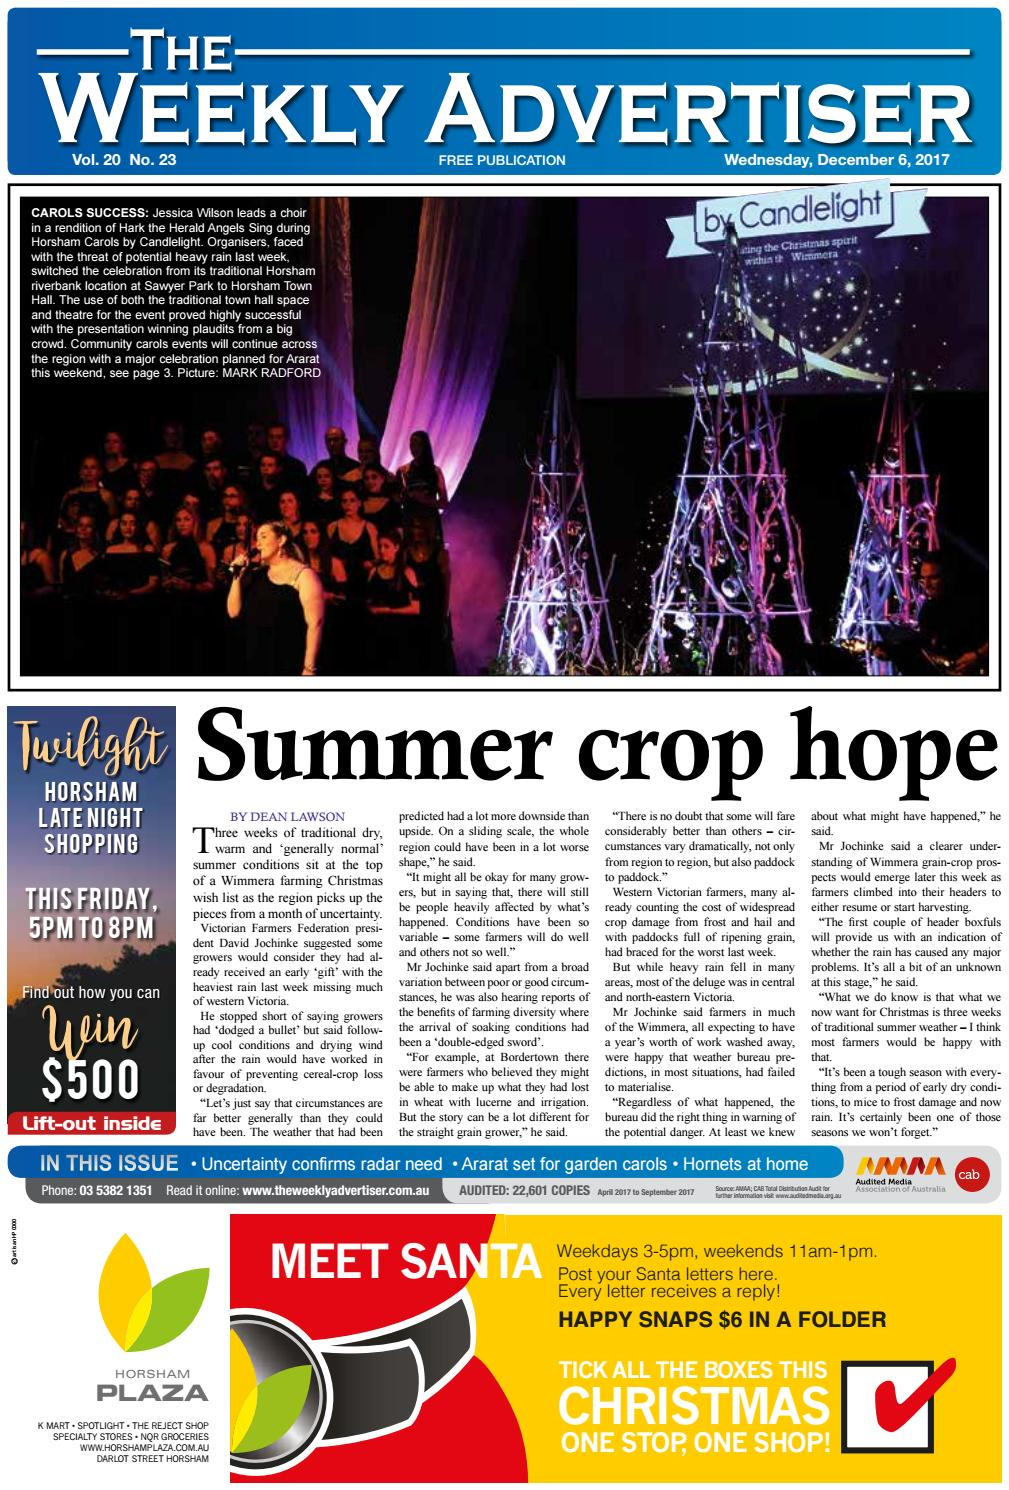 607df8bd205 The Weekly Advertiser - Wednesday